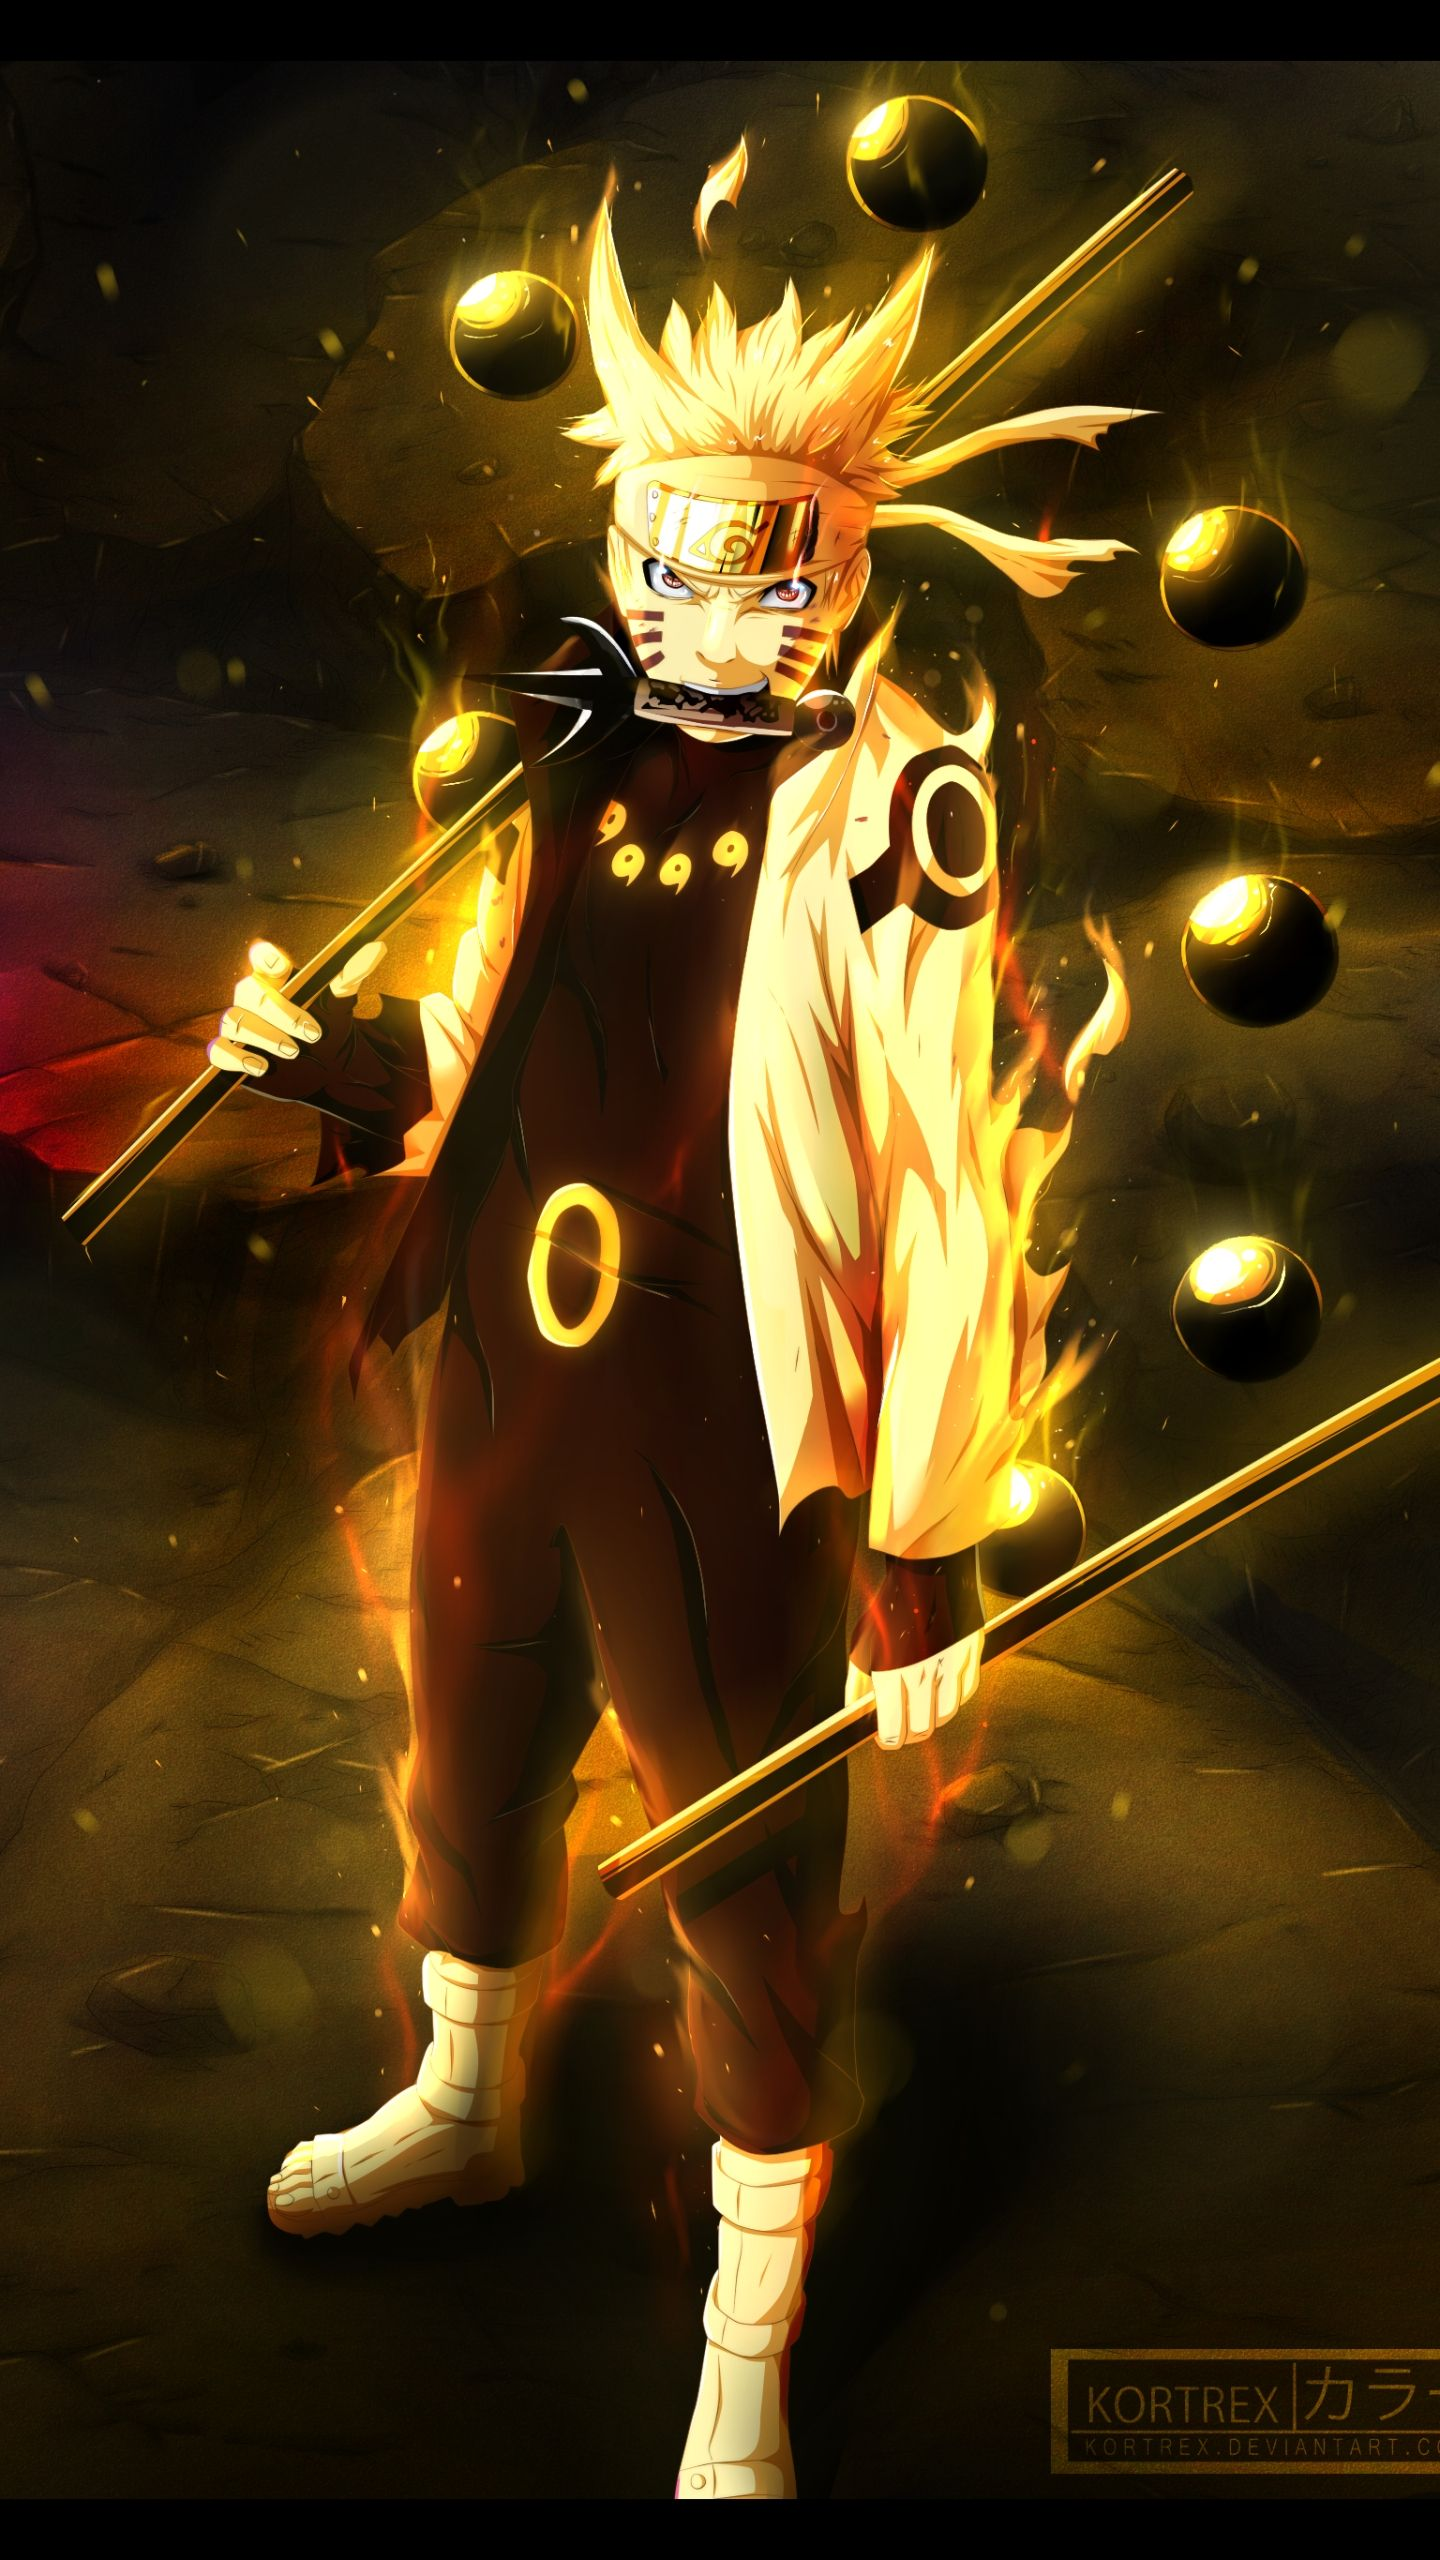 Naruto Wallpaper Iphone 6 Download Best Naruto Wallpaper Iphone